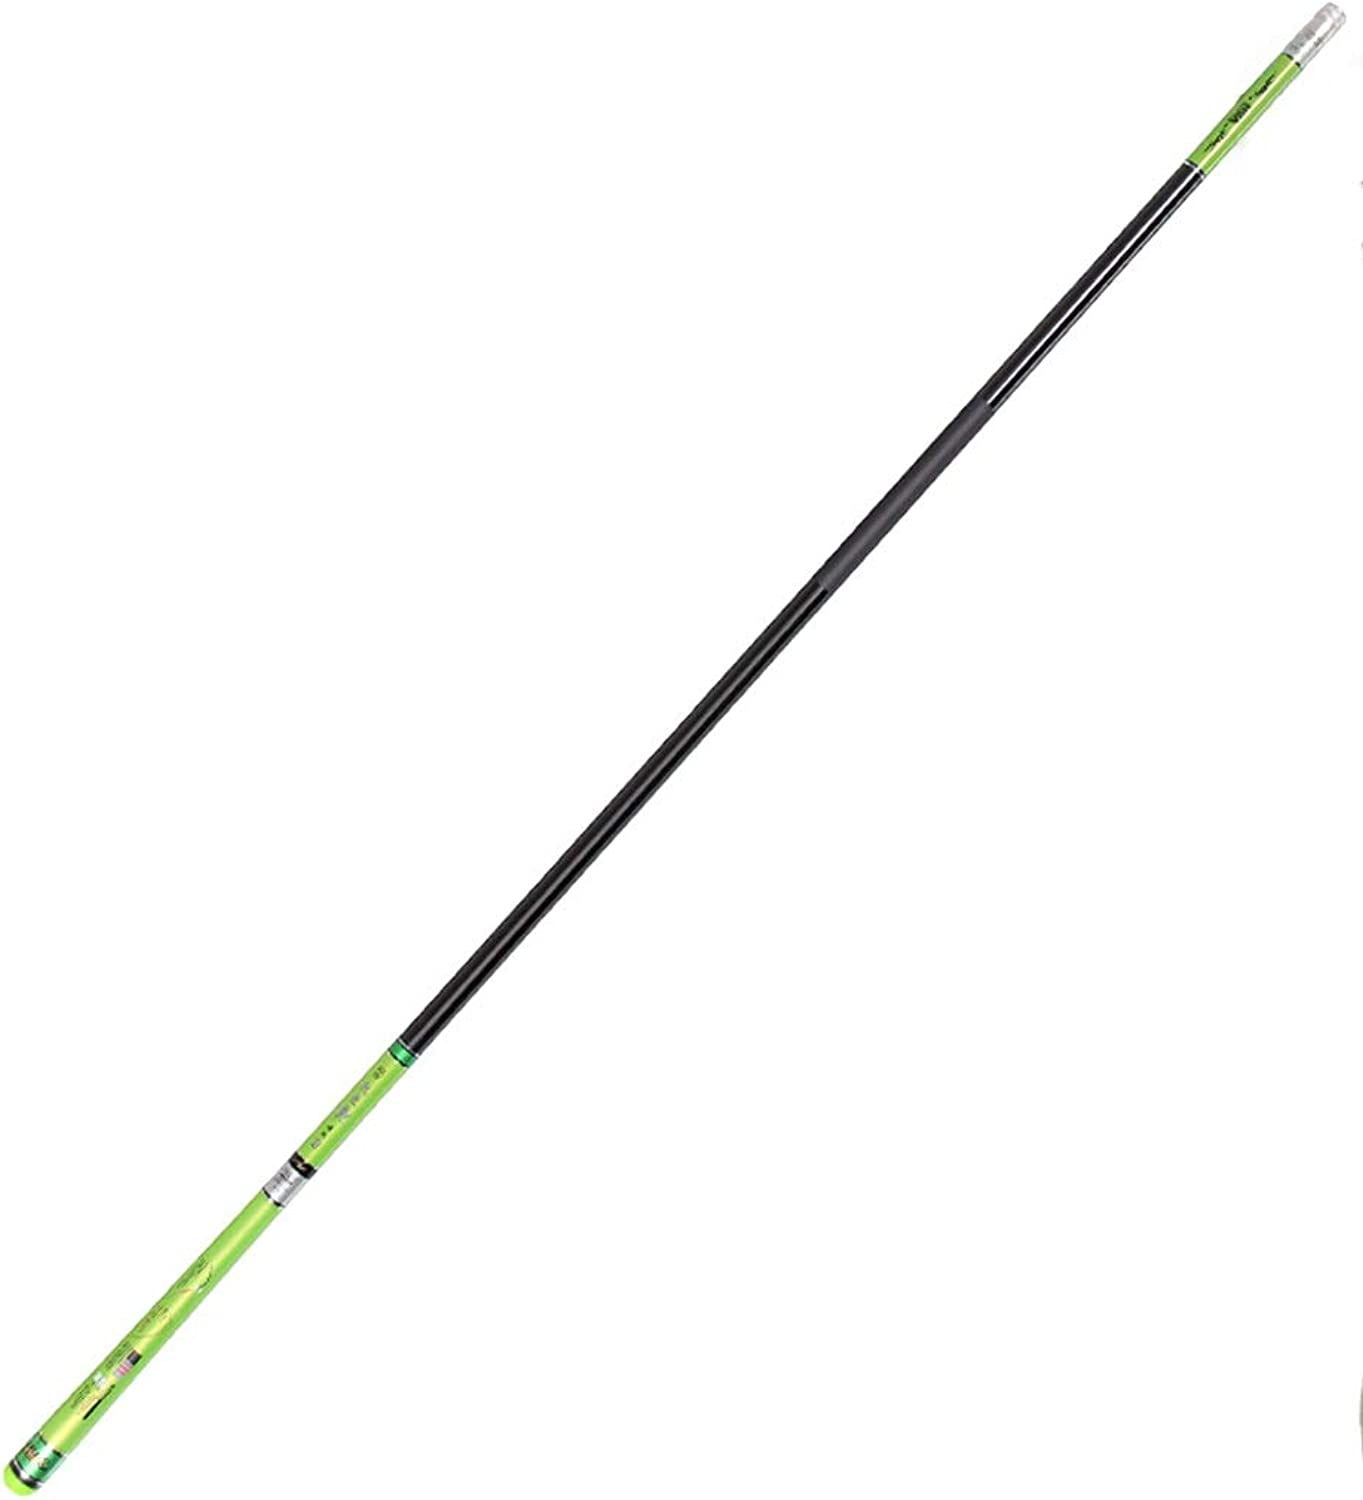 Fishing Rod  Ultra Light Super Hard Carbon Fiber NonSlip Grip 3.9 m Retractable Fishing Gear (only one)